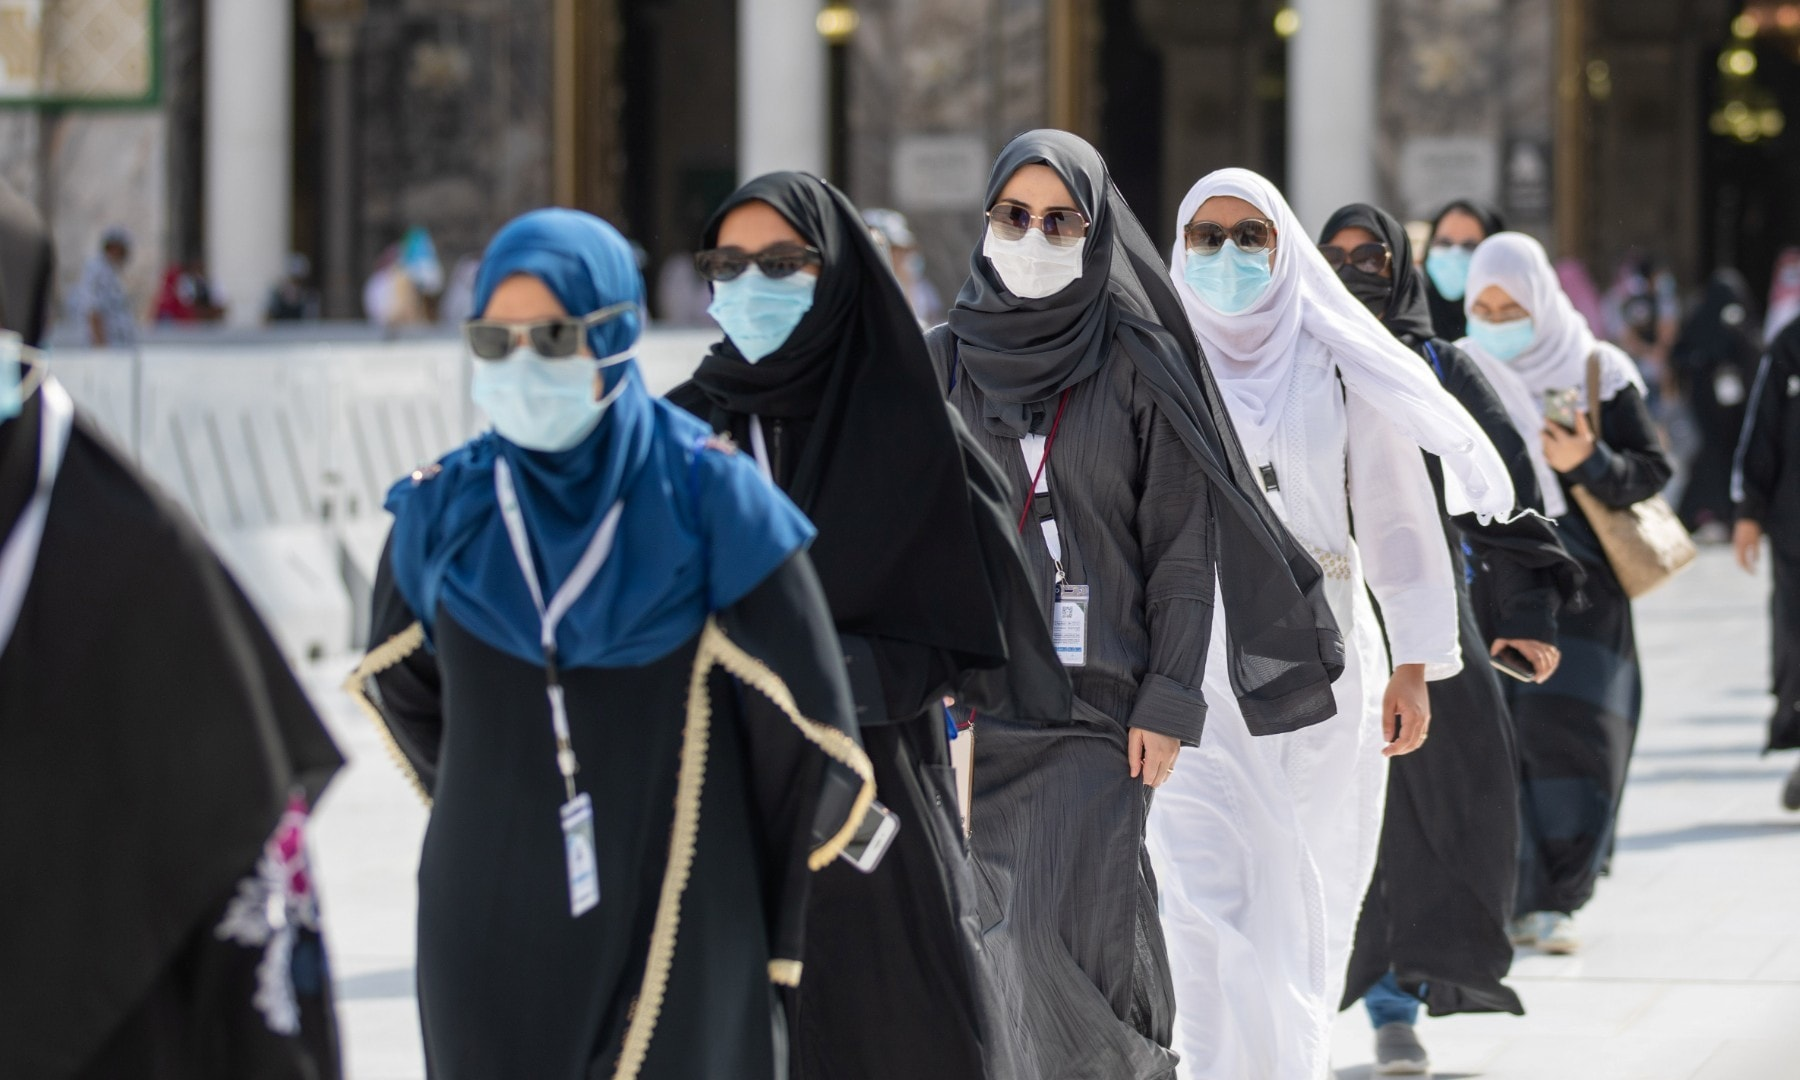 Muslim pilgrims wearing protective face masks arrive to circle the Kaaba at the Grand mosque during the annual Haj pilgrimage on July 29. — Reuters